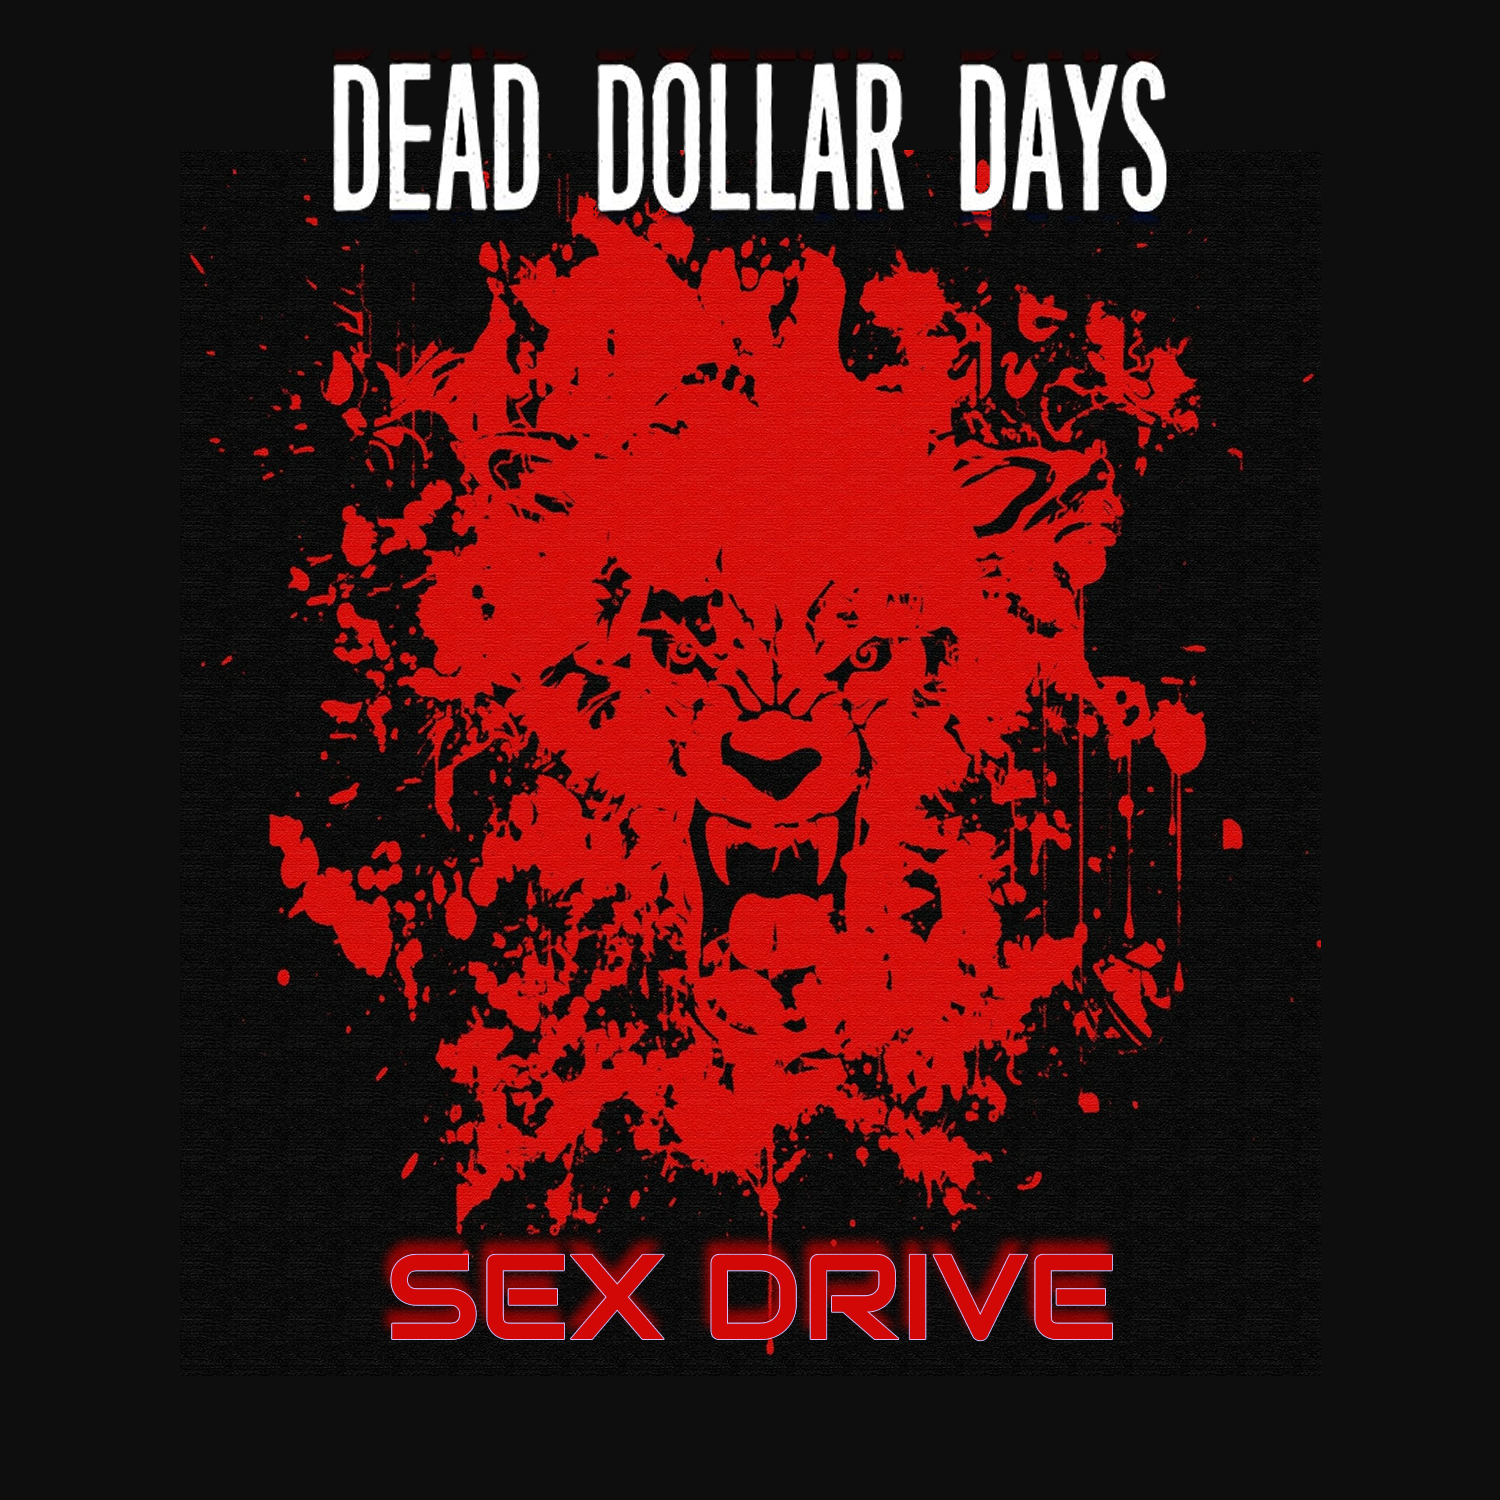 Dead Dollar Days Sex Drive